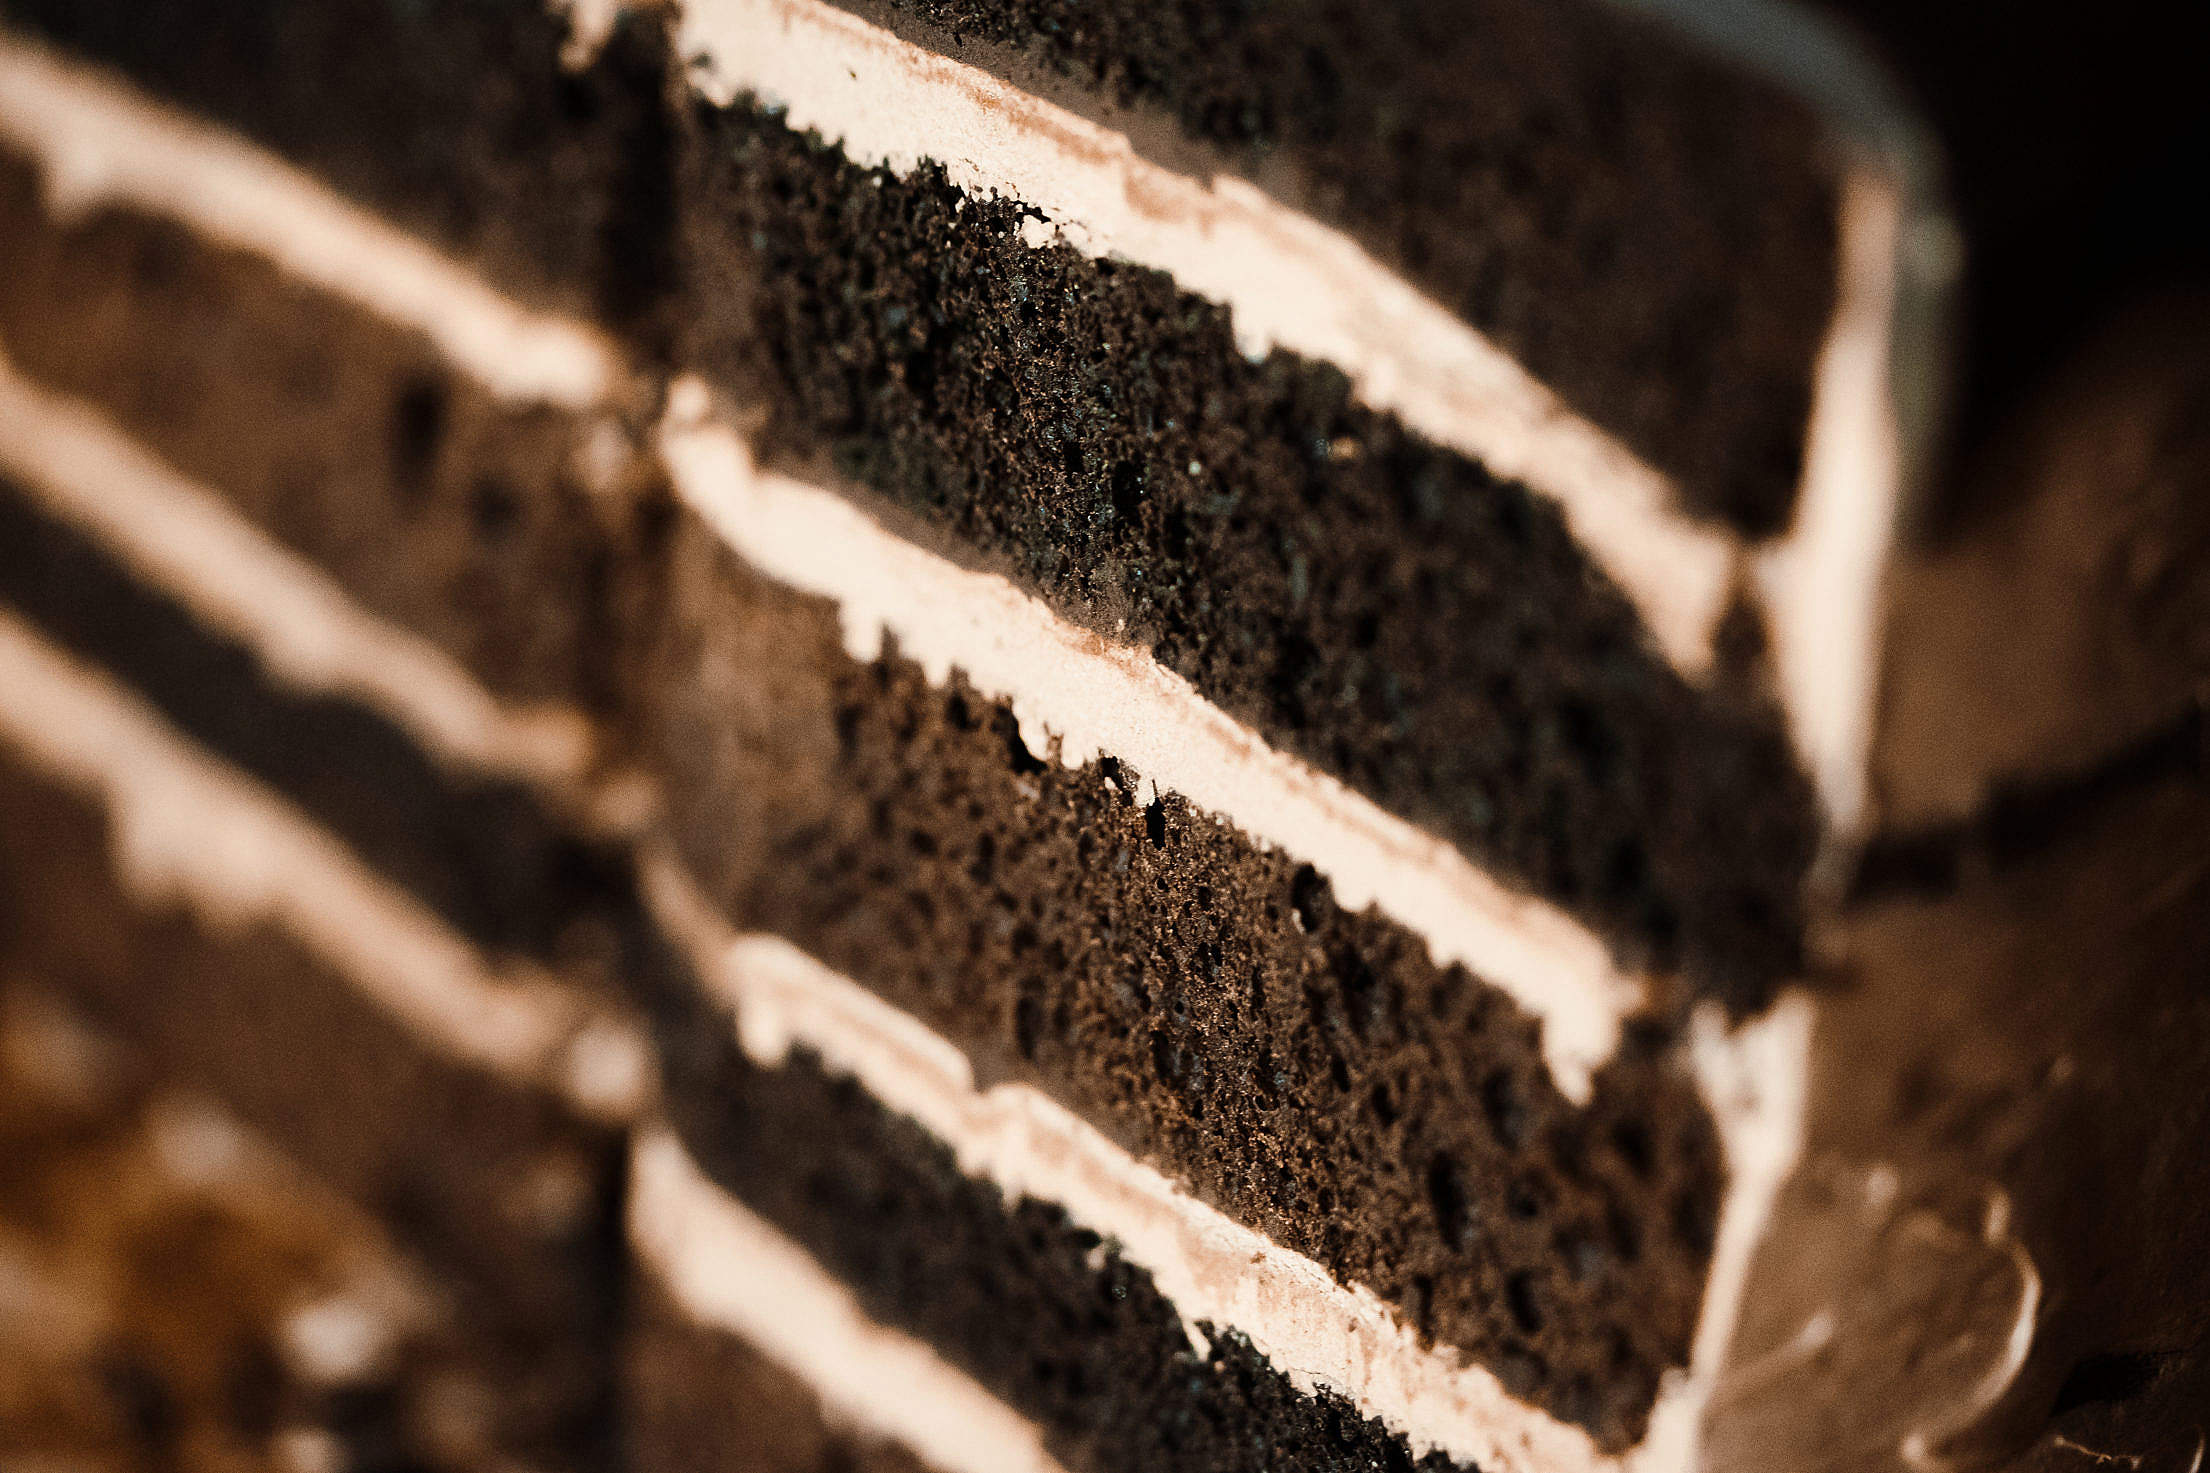 Layers in Homemade Cake Close Up Free Stock Photo